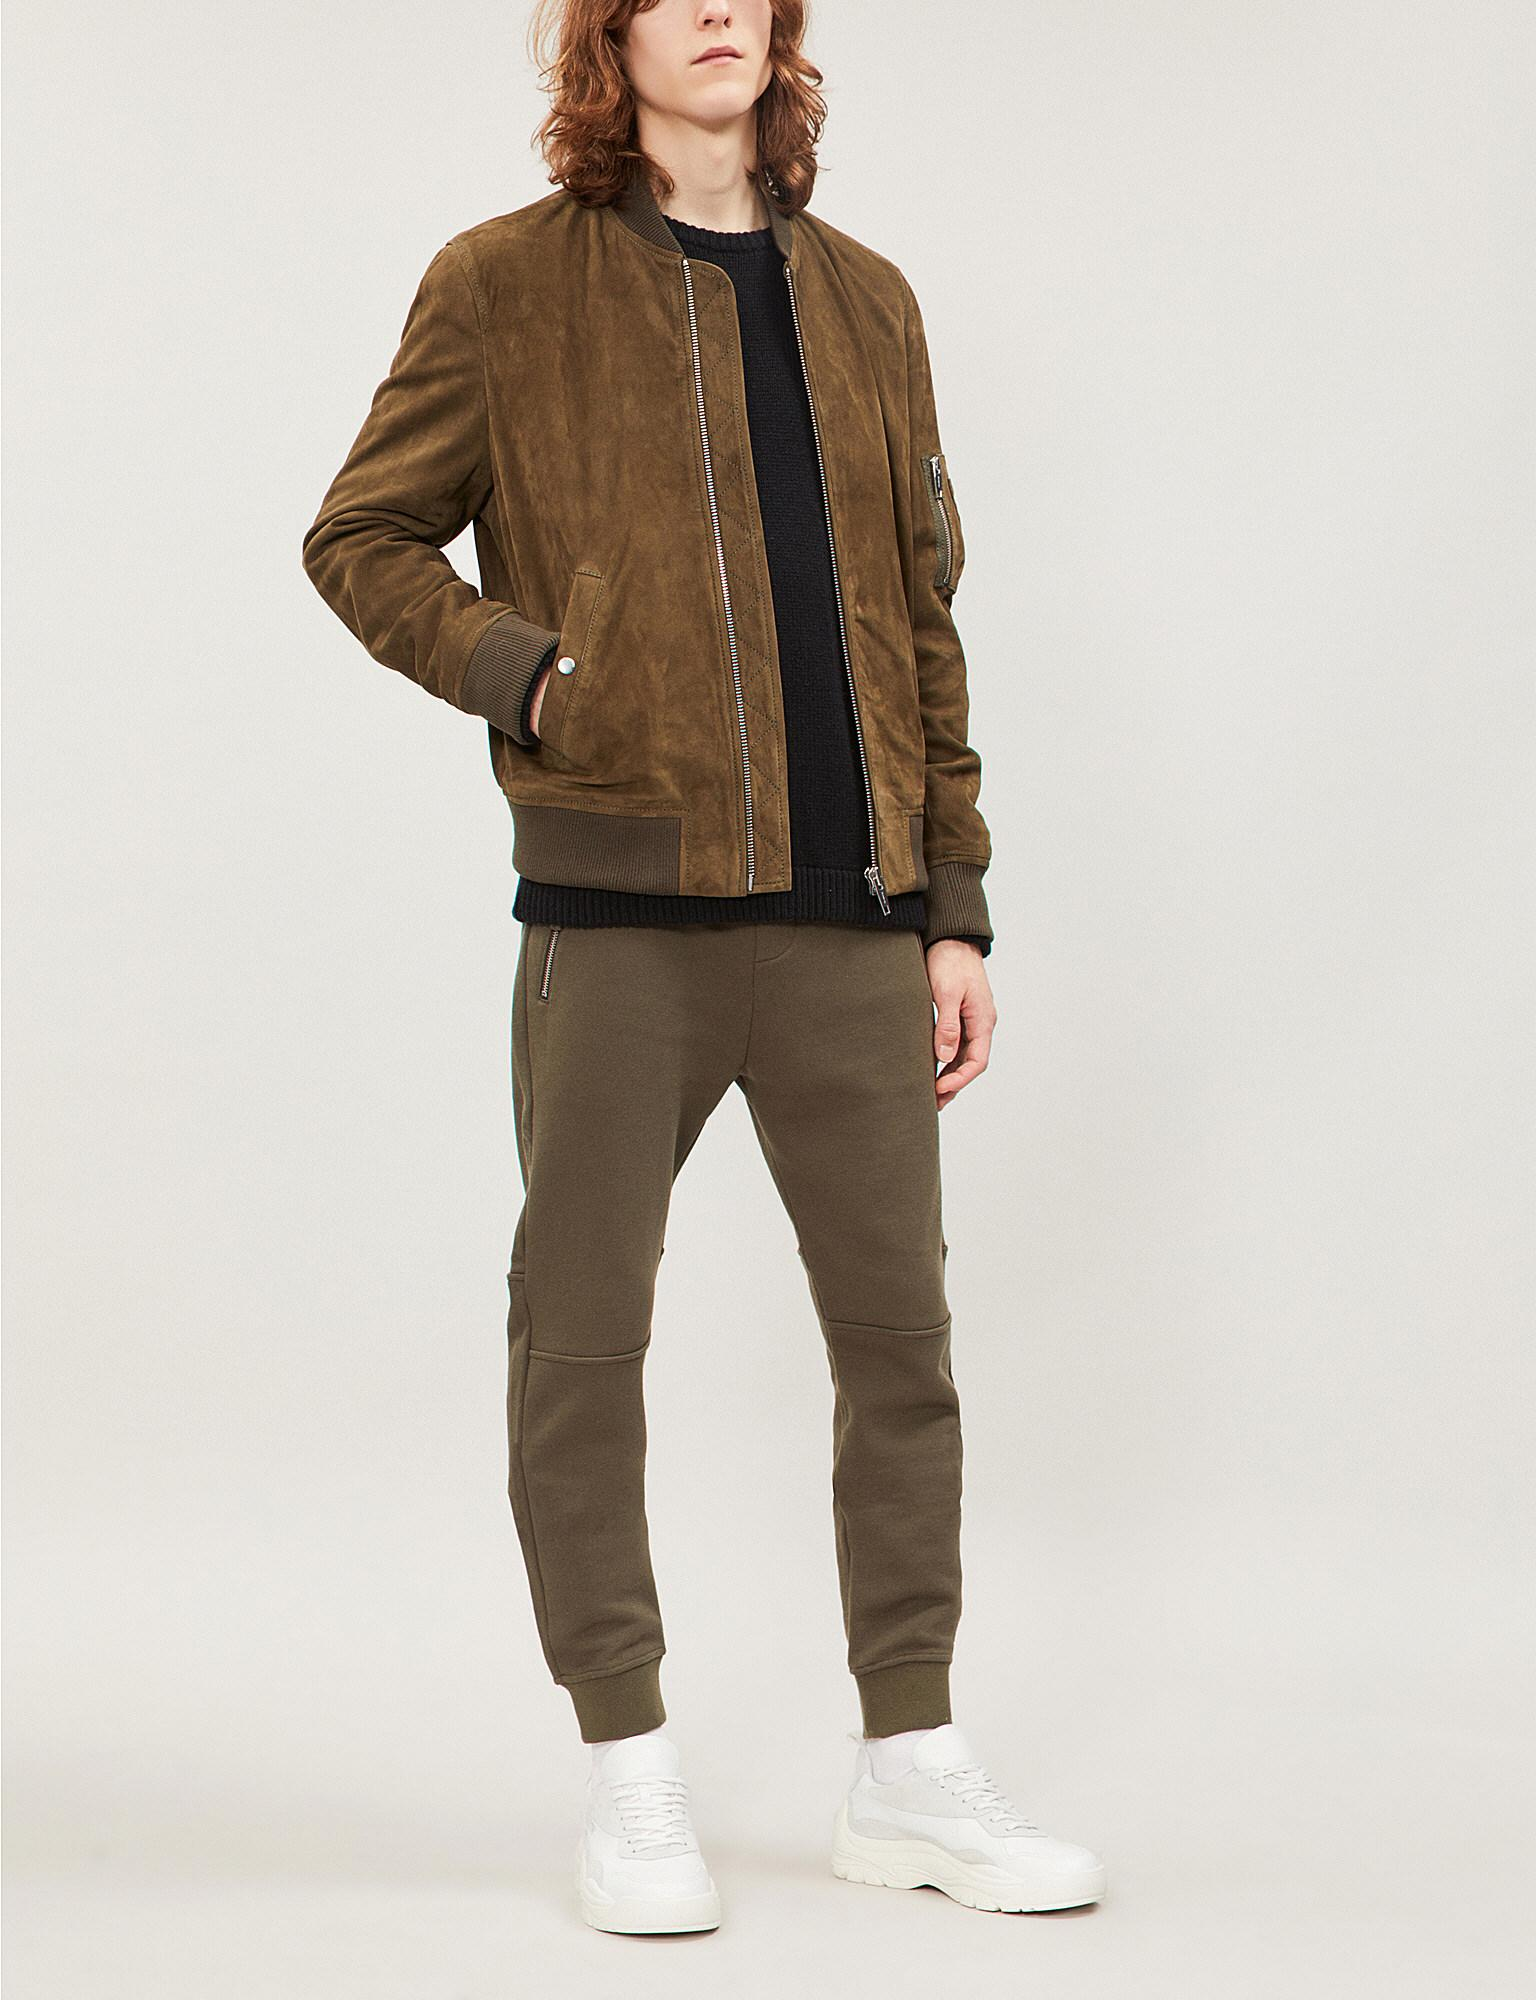 c19b4ca5 The Kooples Zipped Suede Bomber Jacket in Natural for Men - Lyst